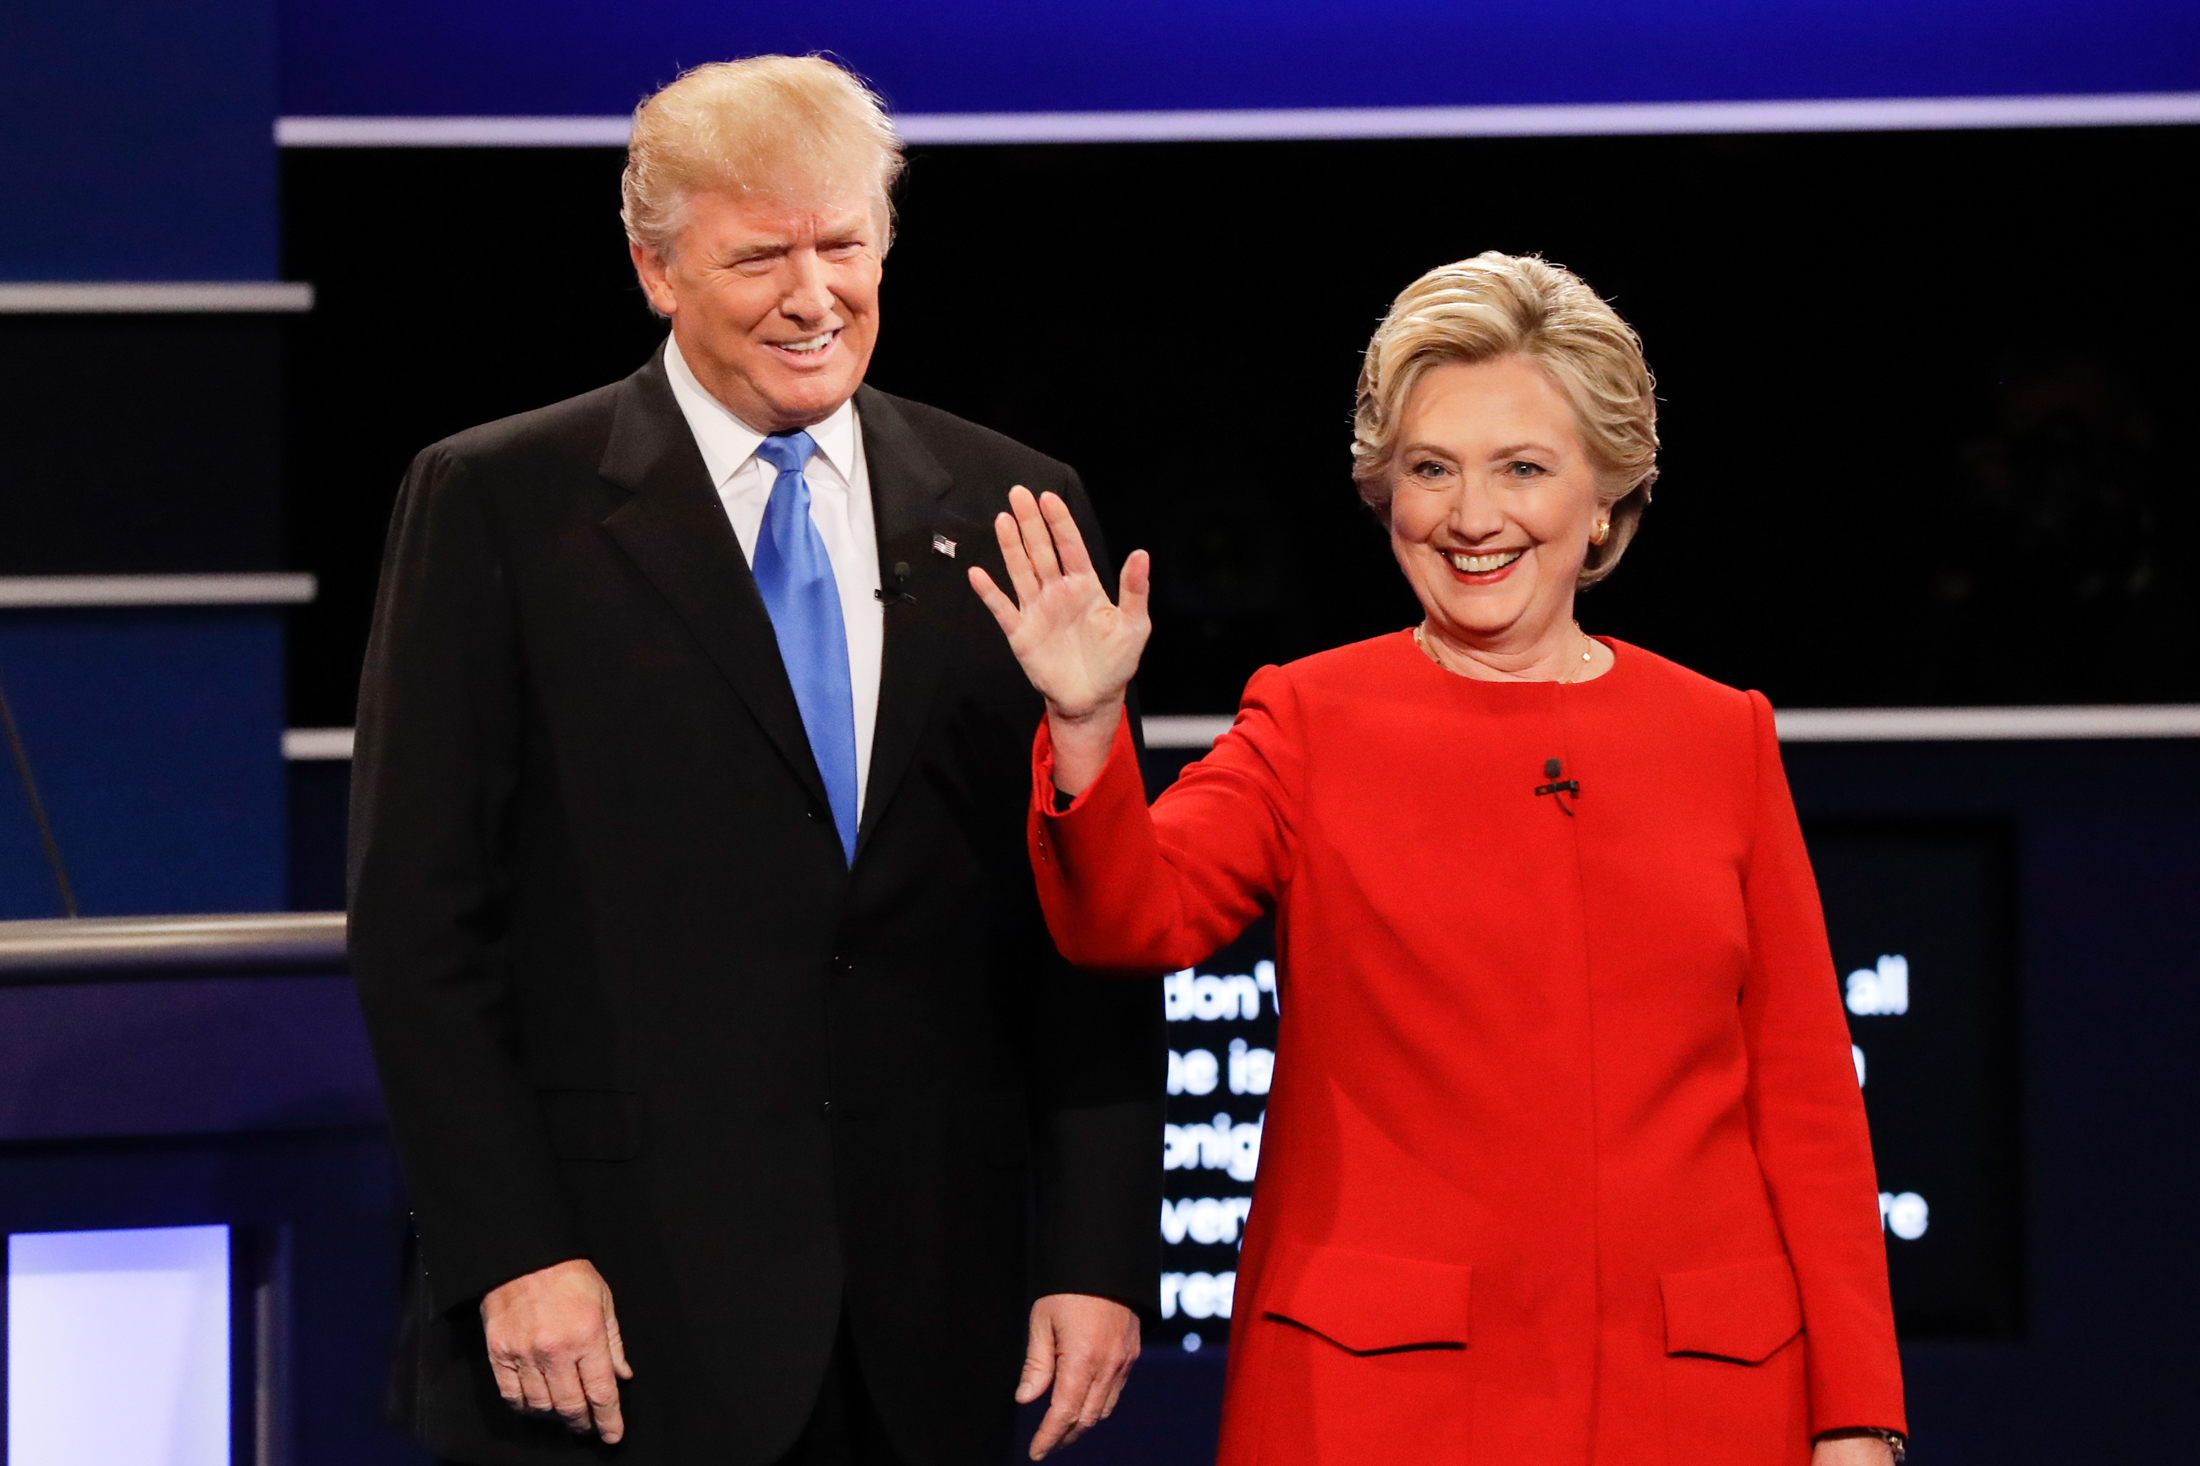 Republican presidential nominee Donald Trump and Democratic presidential nominee Hillary Clinton are introduced during the presidential debate at Hofstra University in Hempstead, N.Y., Monday, Sept. 26, 2016. (David Goldman/AP)